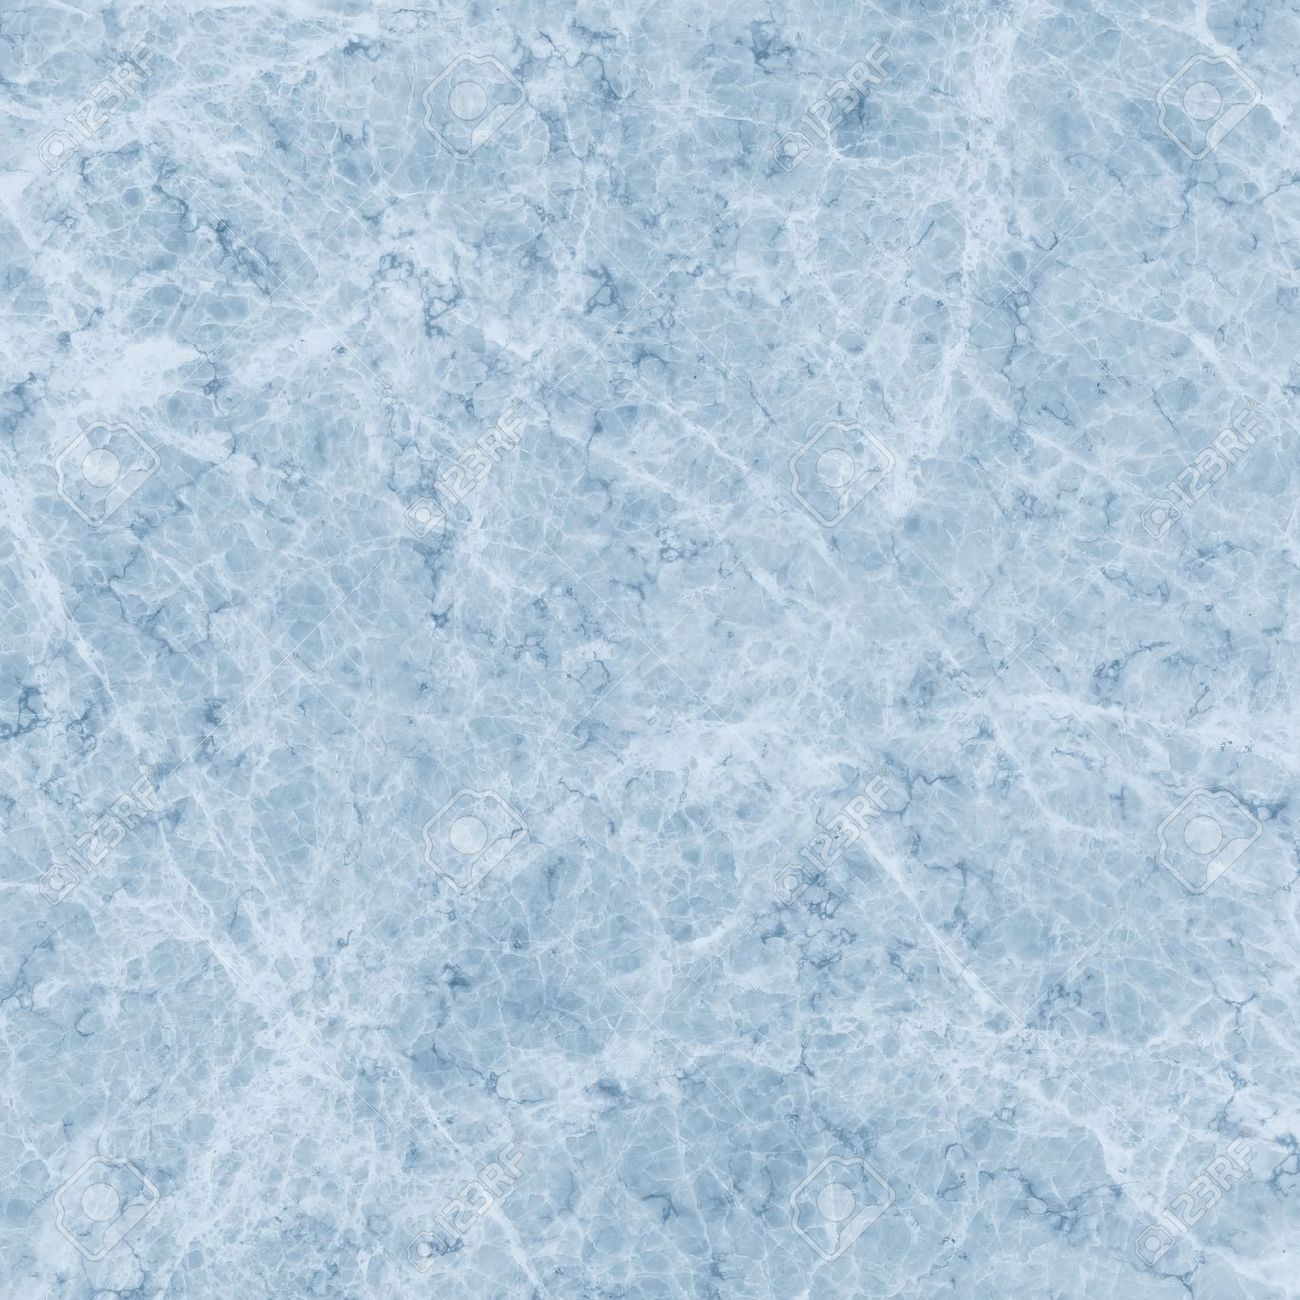 Stock Photo In 2020 Pink Marble Background Blue Texture Blue